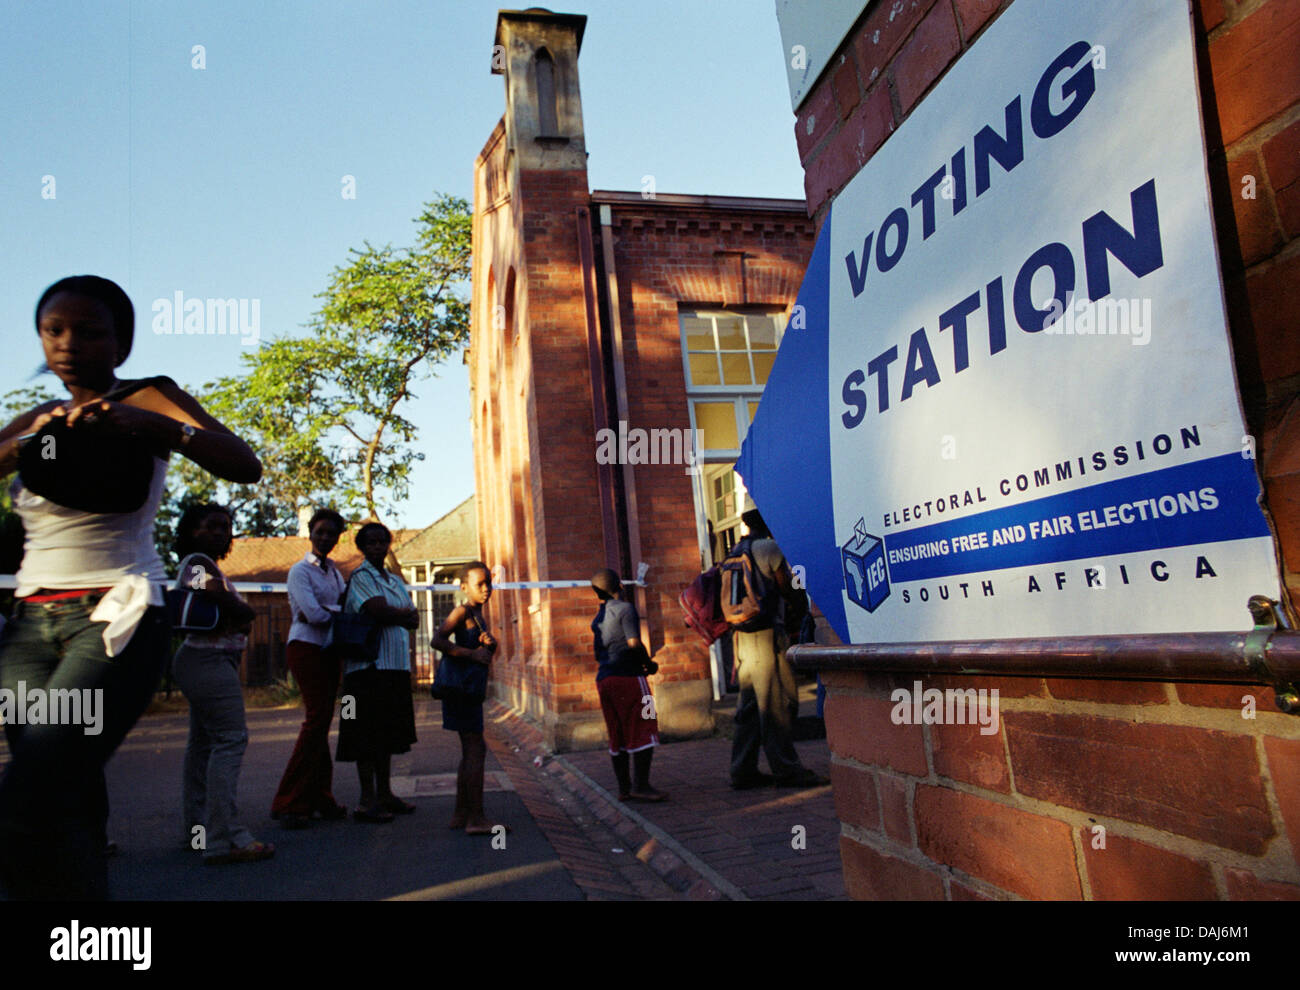 Ten years after South Africa's first democratic elections voters queue again outside polling stations - this - Stock Image